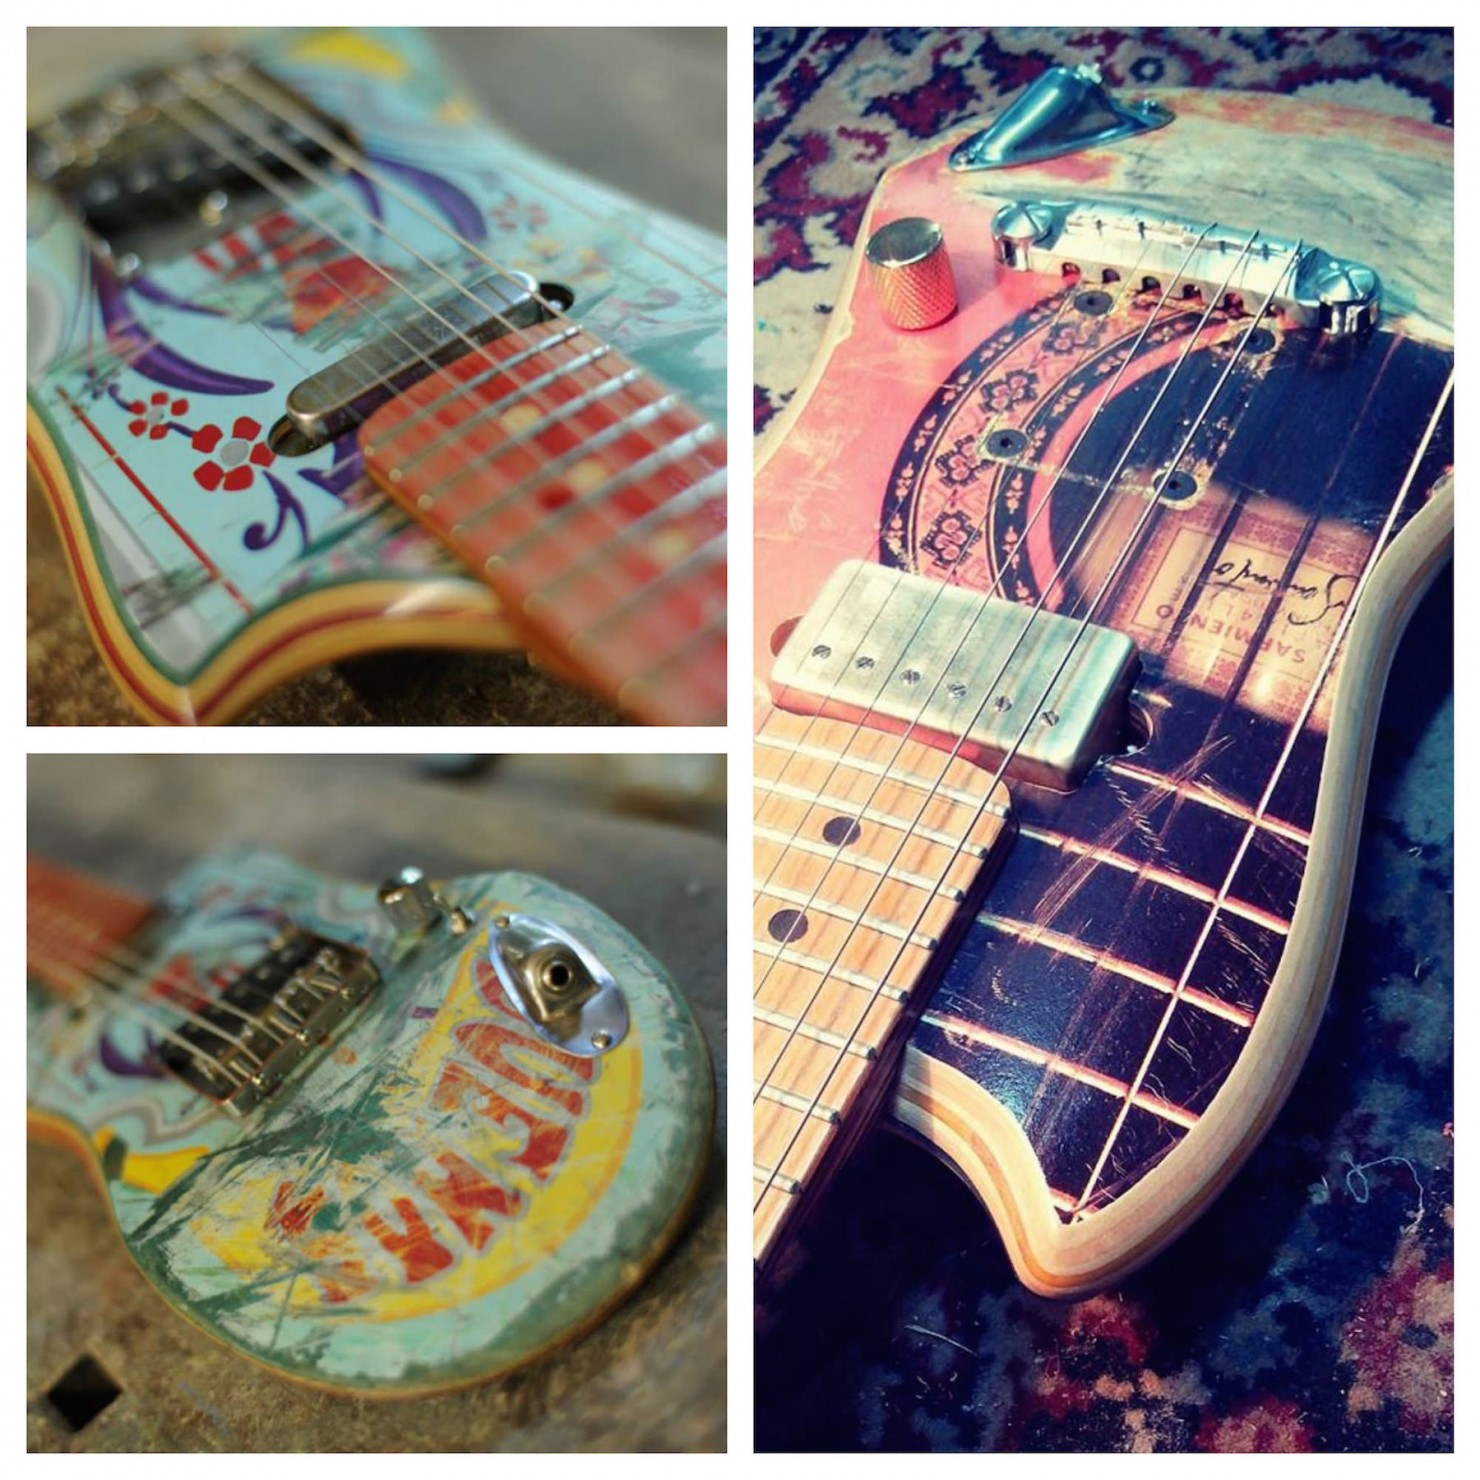 Skateboard_Guitars_1_Fotor_Collage_2